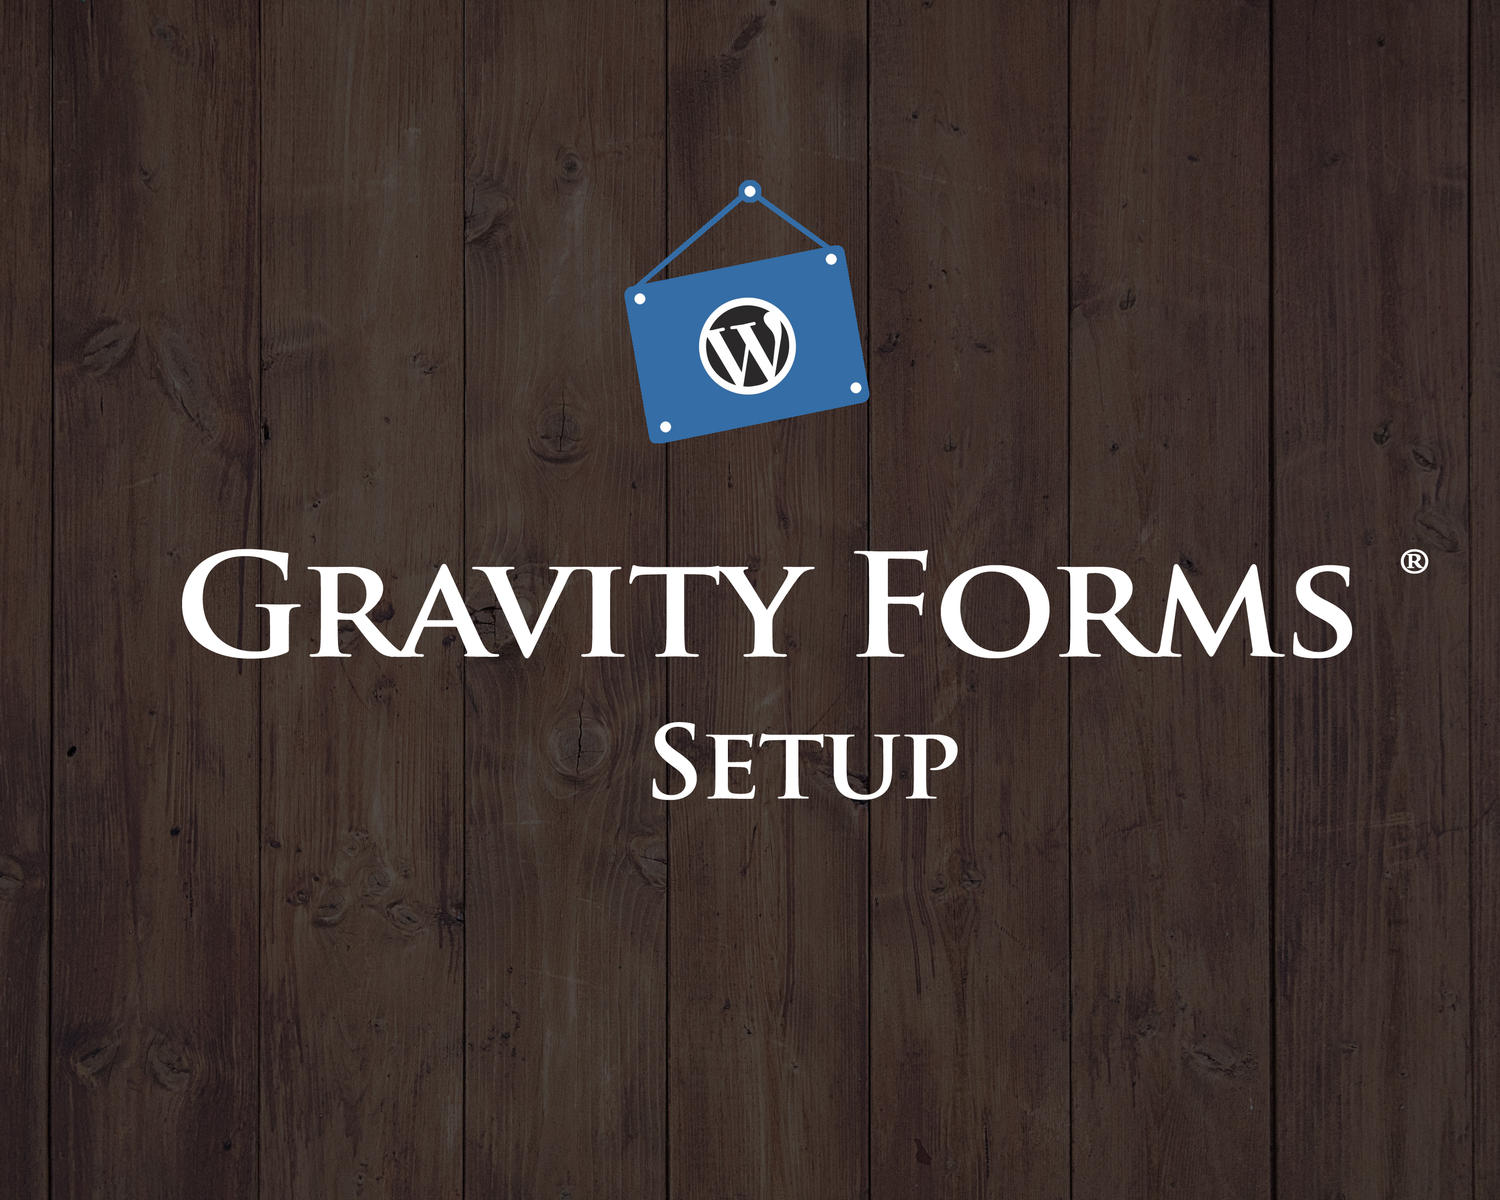 Gravity Form Setup and Advanced Wordpress Form Creation by hasanet - 98069